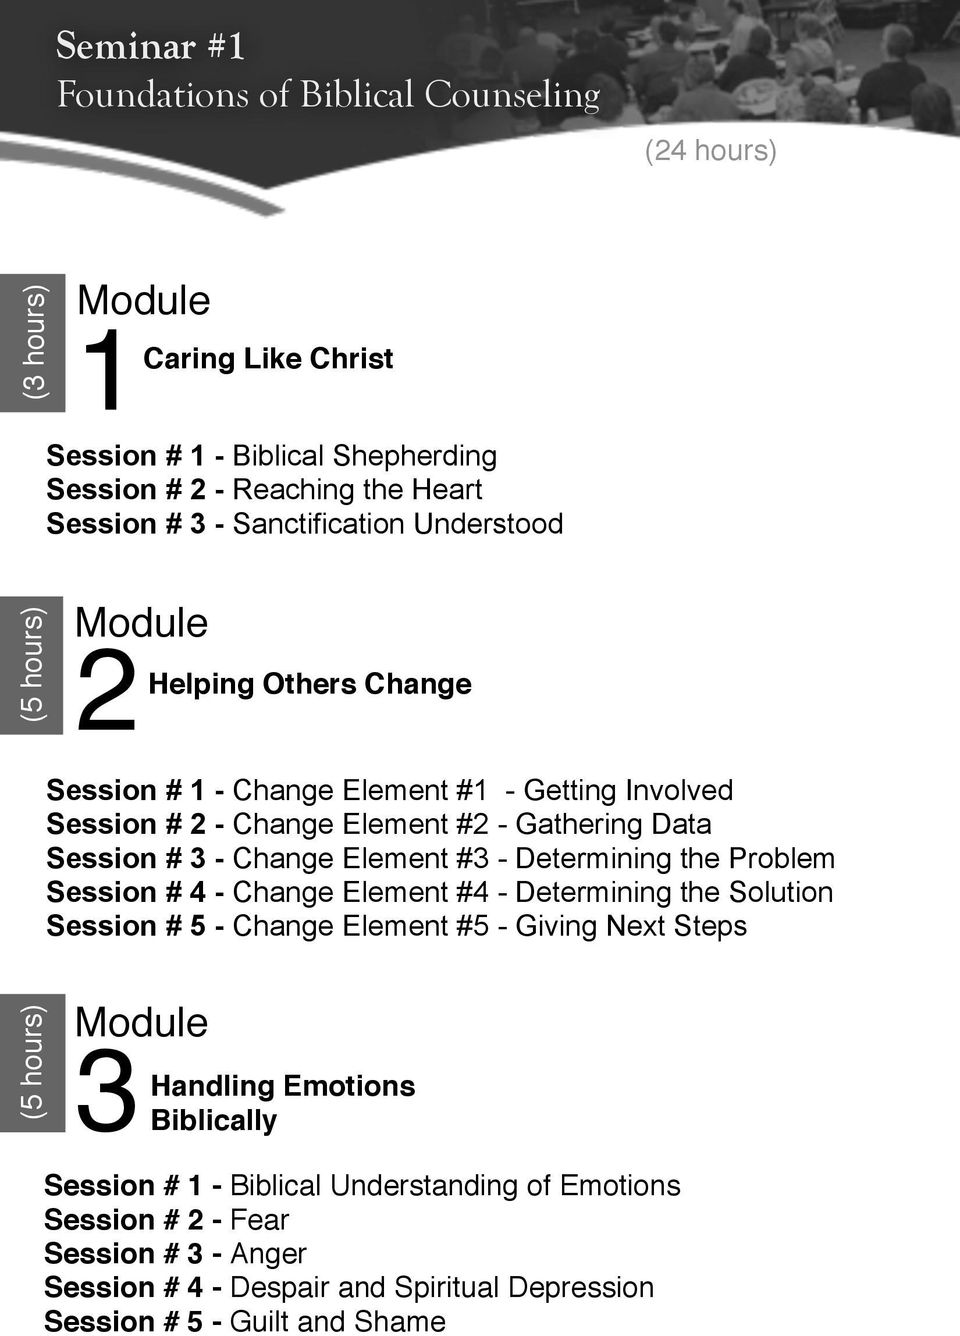 Change Element #3 - Determining the Problem Session # 4 - Change Element #4 - Determining the Solution Session # 5 - Change Element #5 - Giving Next Steps (6 (5 hours) 3Handling